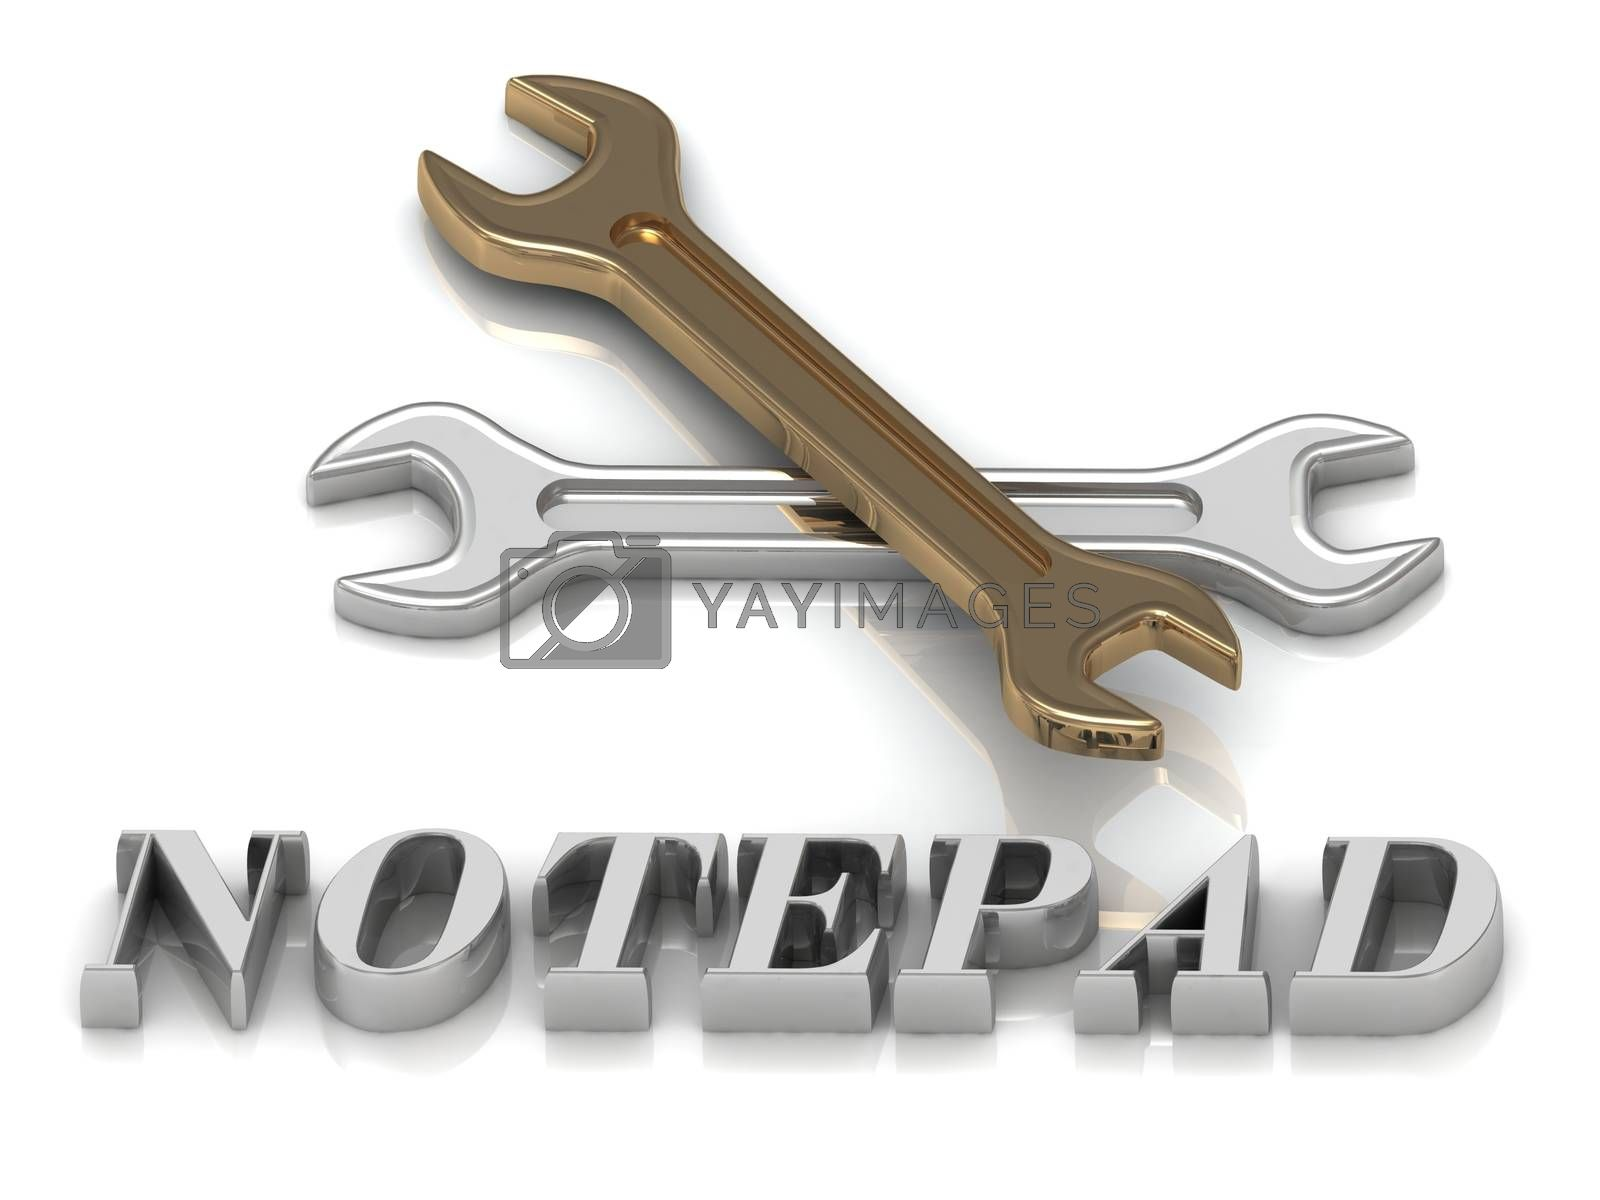 NOTEPAD- inscription of metal letters and 2 keys on white background